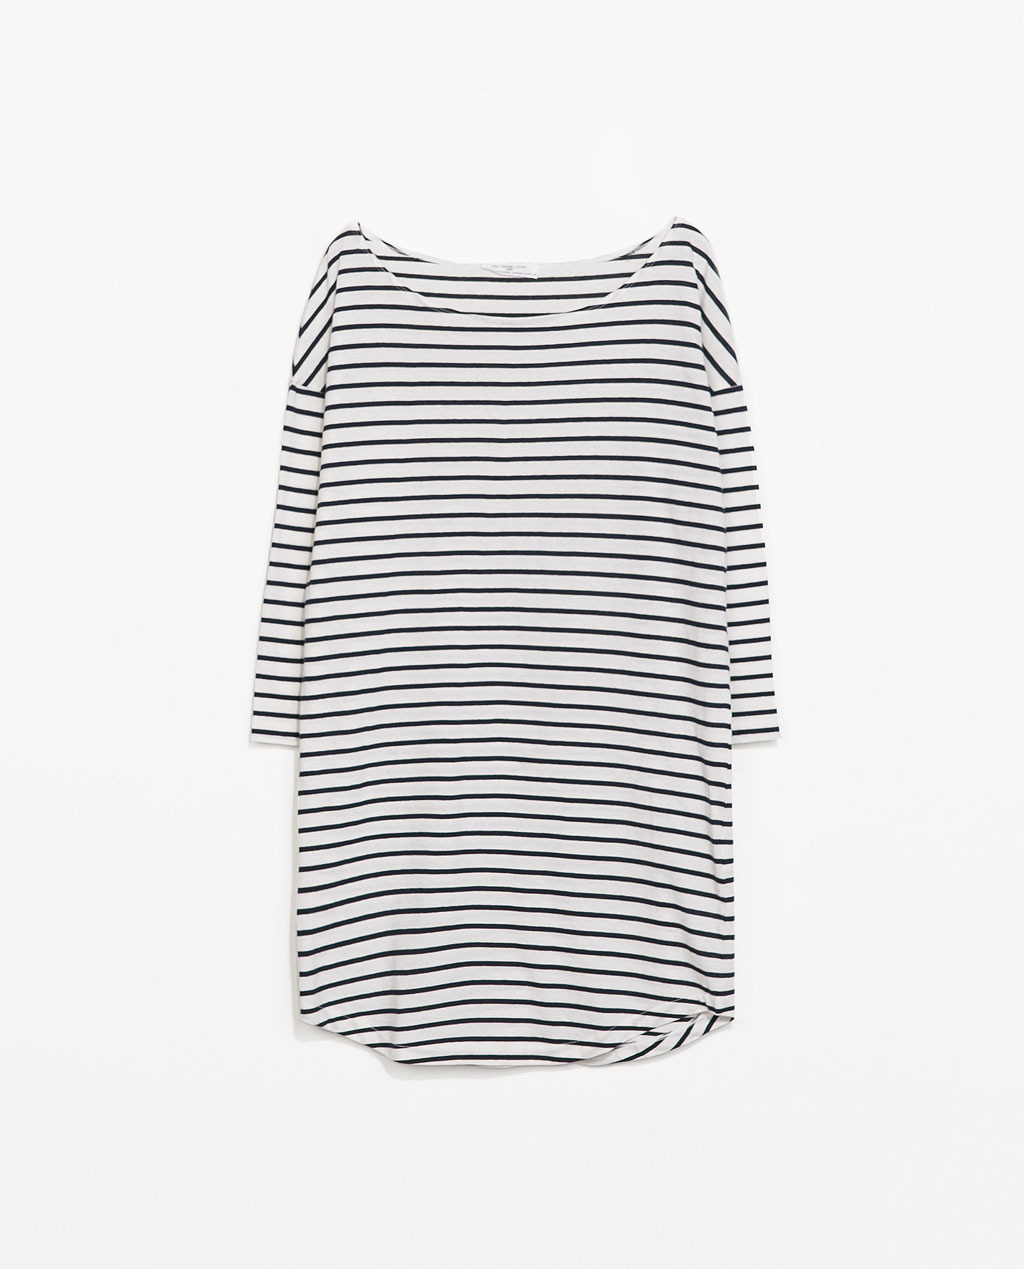 Organic Cotton Striped Dress - style: t-shirt; length: mini; neckline: slash/boat neckline; fit: loose; pattern: horizontal stripes; predominant colour: ivory/cream; secondary colour: navy; occasions: casual, holiday; fibres: cotton - 100%; sleeve length: 3/4 length; sleeve style: standard; texture group: cotton feel fabrics; pattern type: fabric; pattern size: standard; season: s/s 2014; trends: monochrome